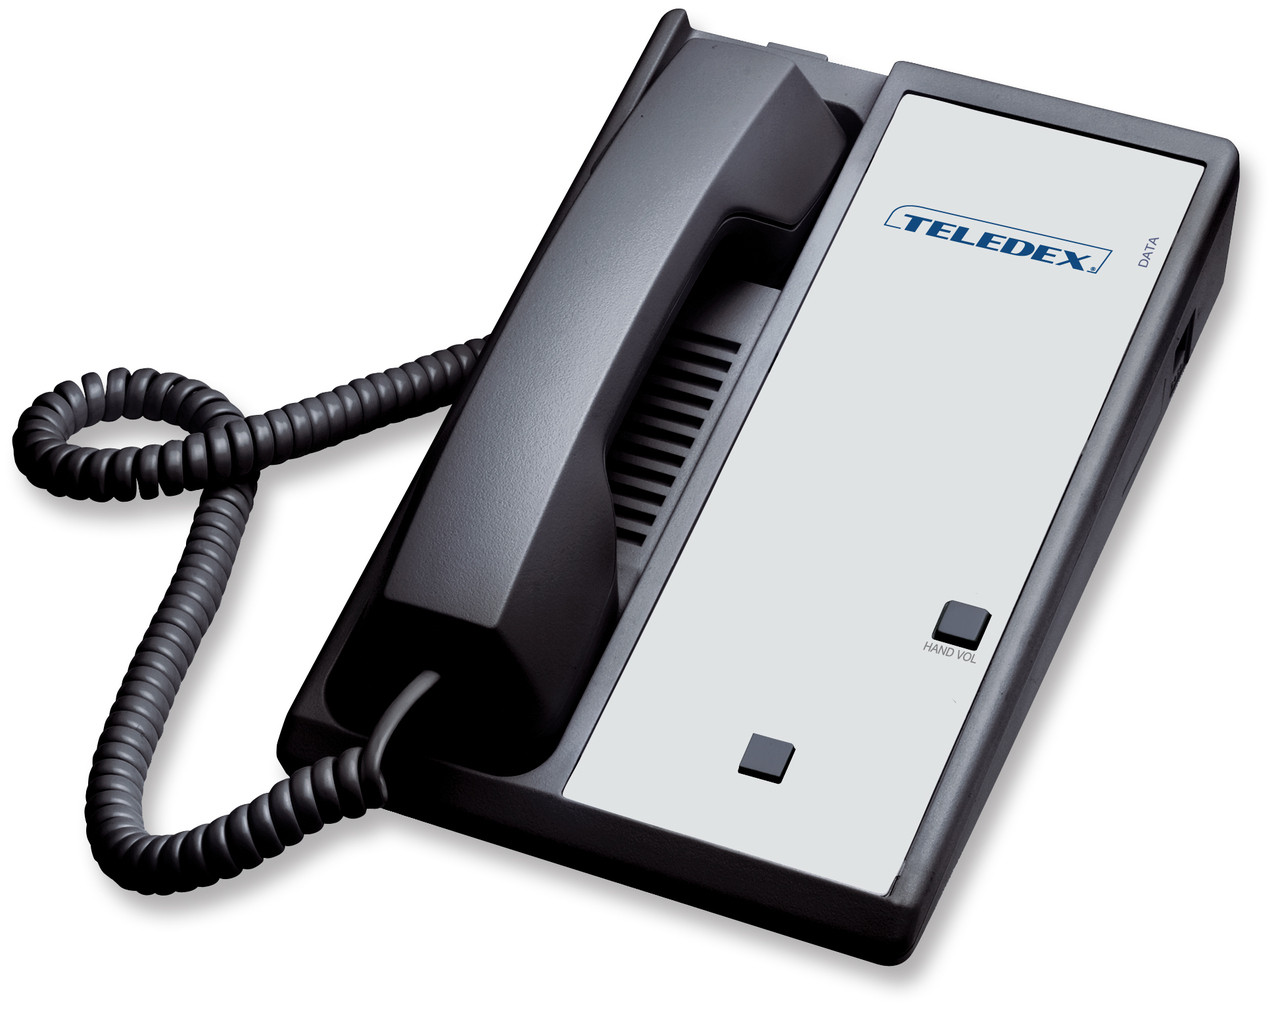 Teledex Lobby Telephone